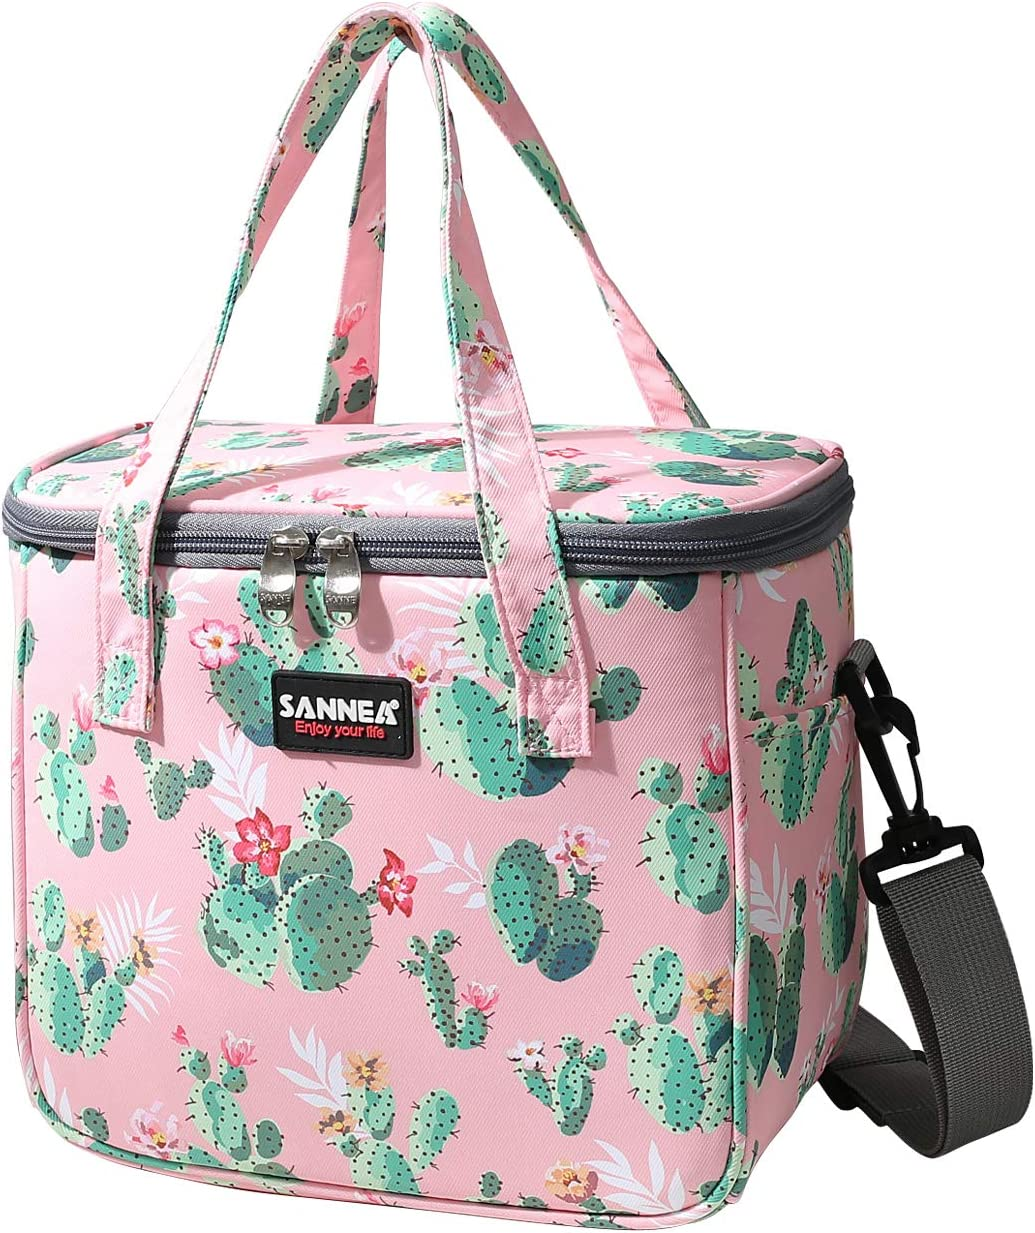 Lunch Bags for Women Girls Insulated Lunch Box Colorful Fashion Tote Bag Snacks Organizer Durable Leak-proof Drink Holder for School/Picnic/Hiking/College Work, Cactus